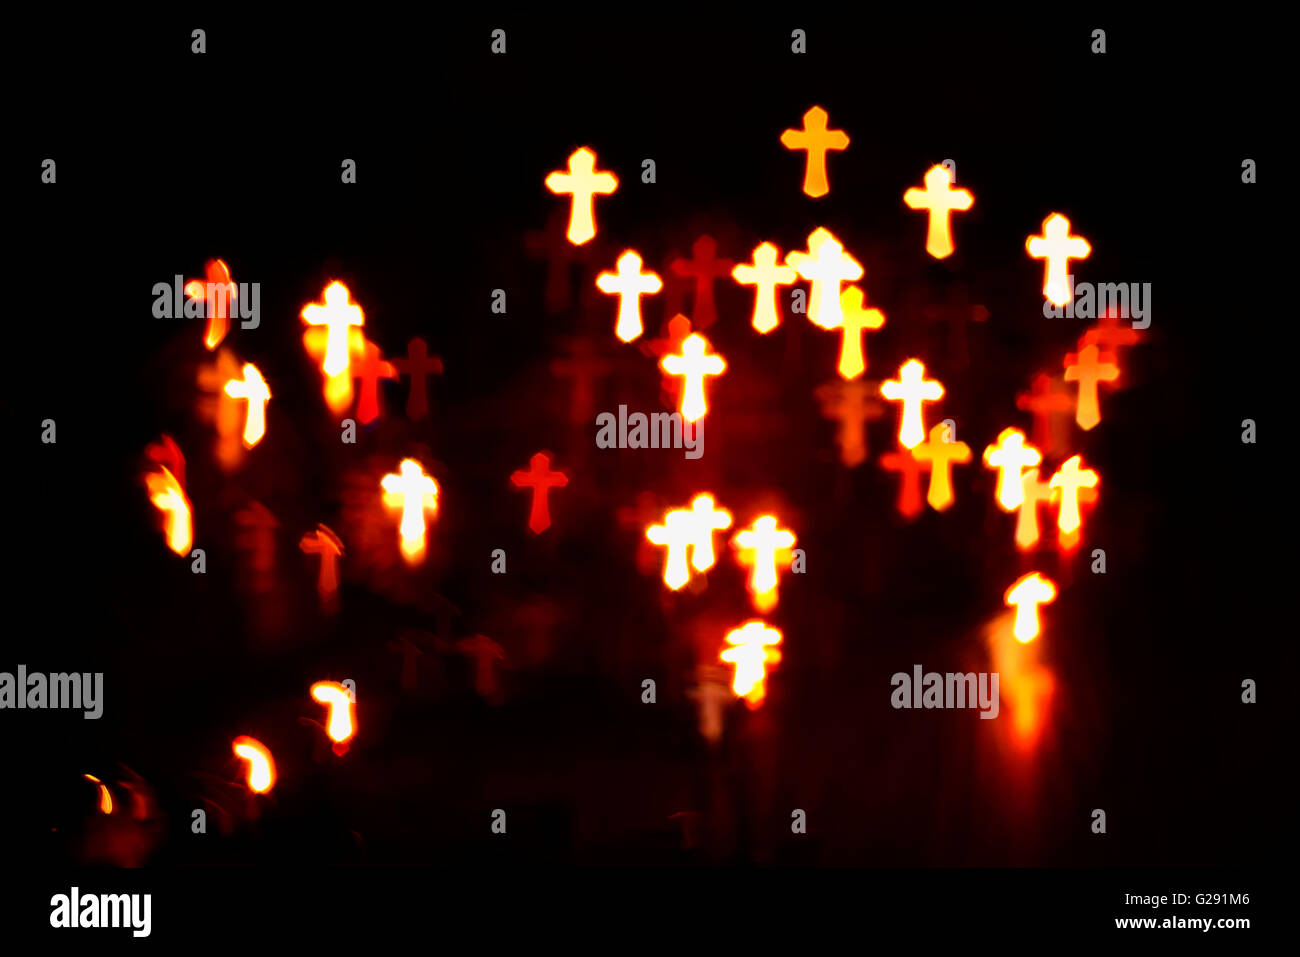 faith Christianity crosses abstract blur background - Stock Image